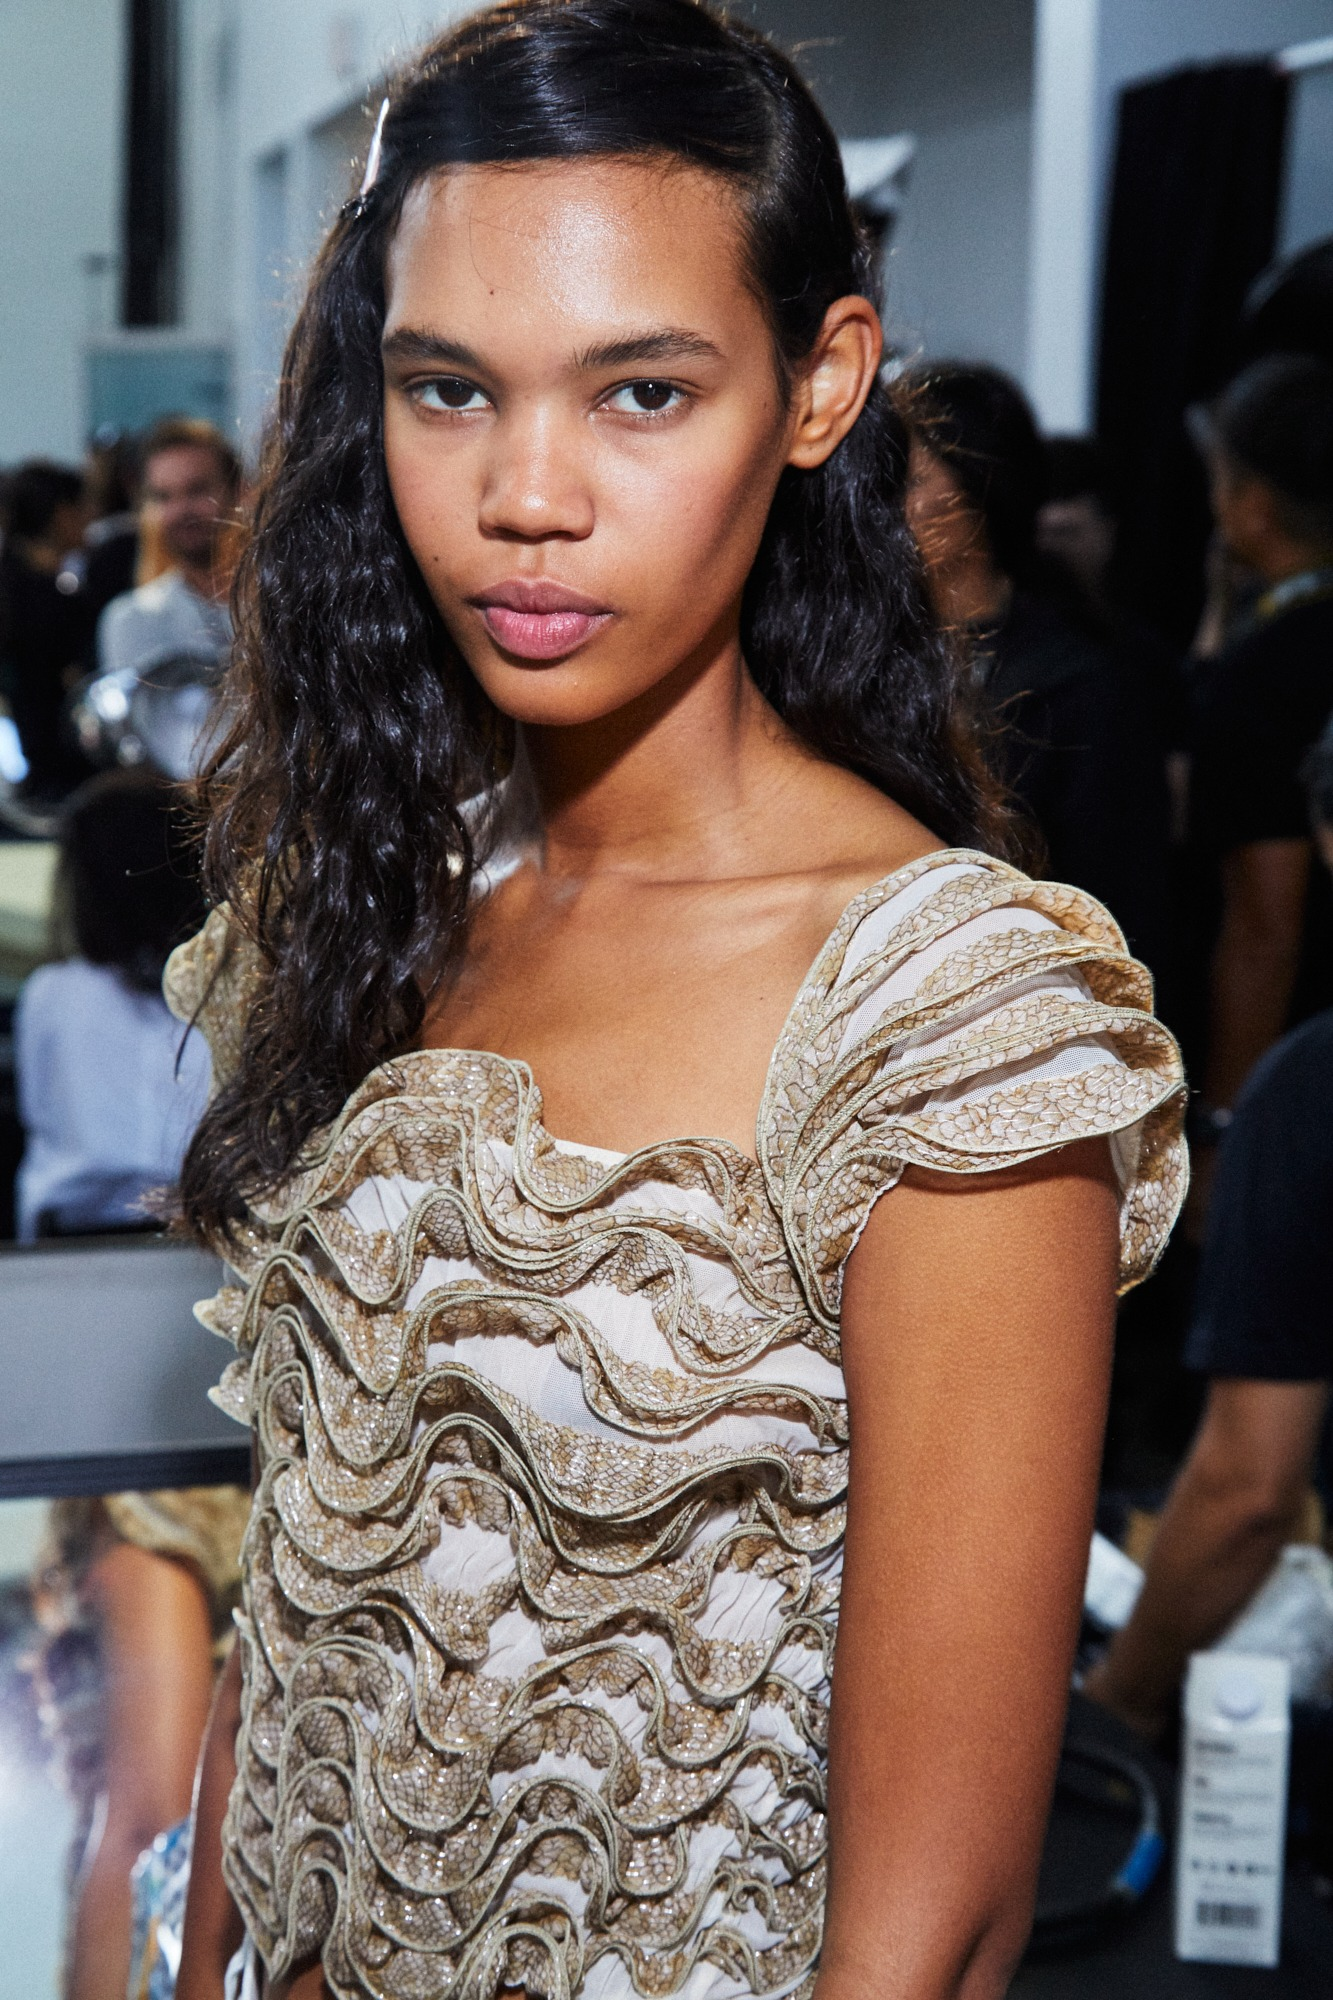 MICHAEL KORS BACKSTAGE Sept 2019 SS20 Maybelline Looks Blush Soft SincerelyHumble Blog 3